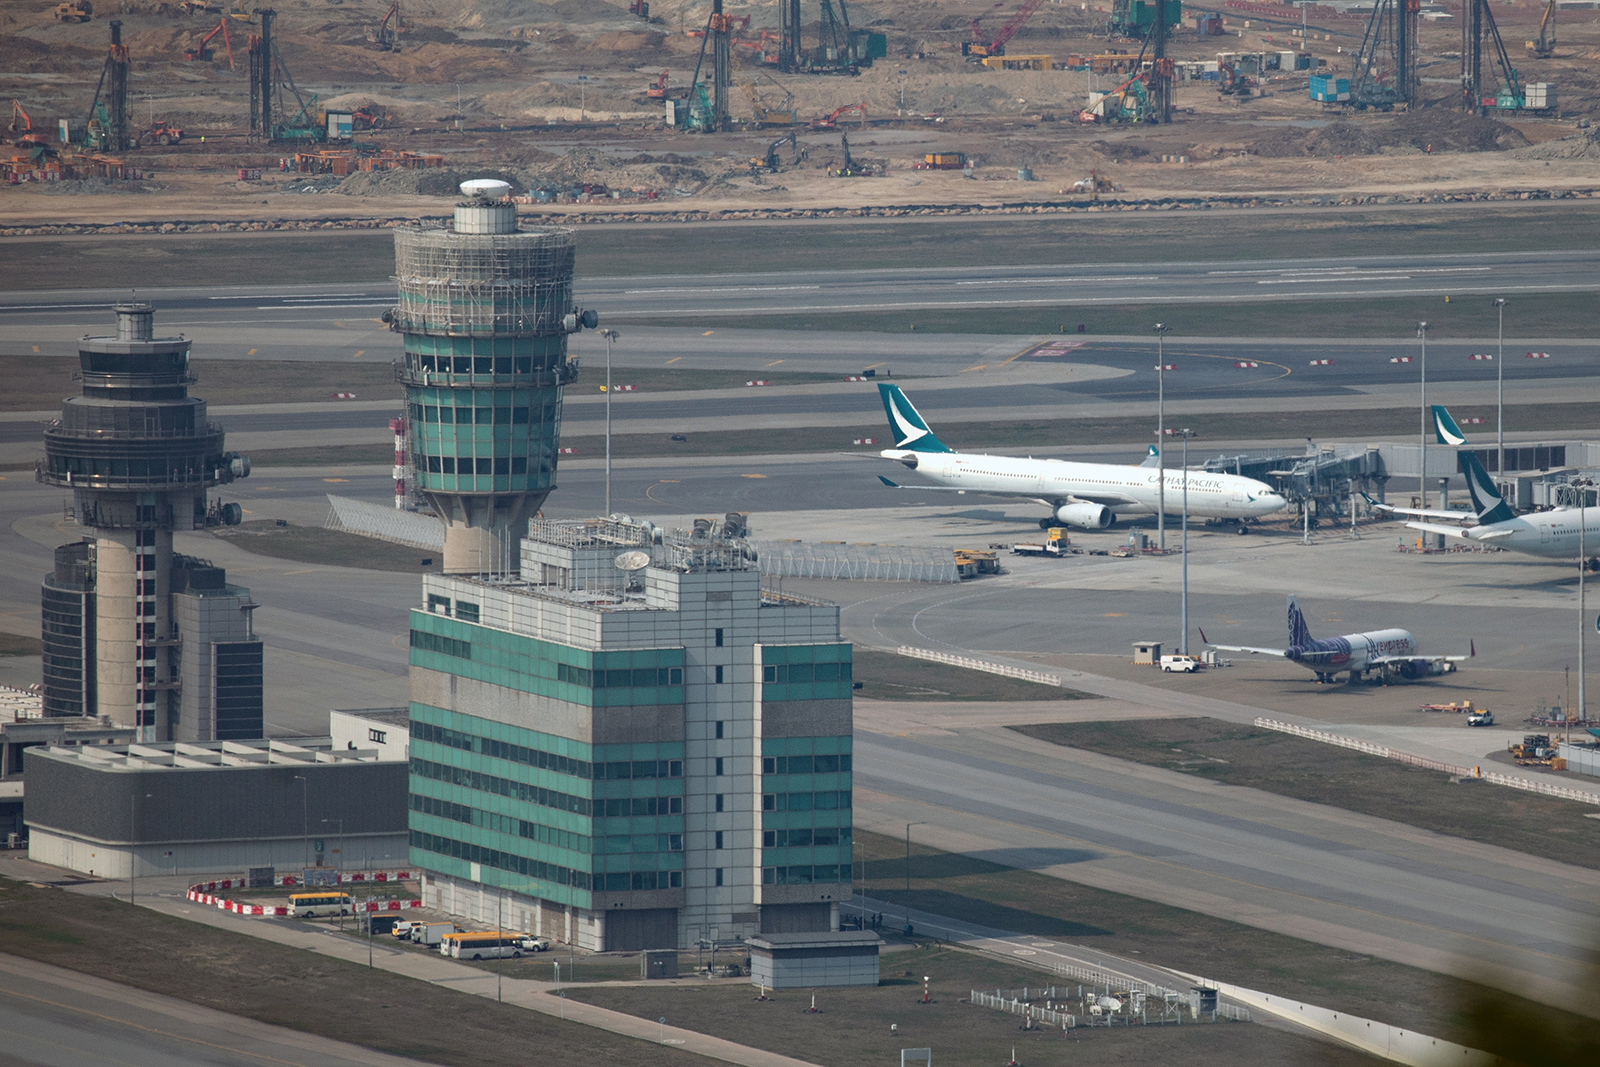 Aircraft operated by Cathay Pacific Airways Ltd. is seen at the Hong Kong International Airport in Hong Kong, China, on March 9.